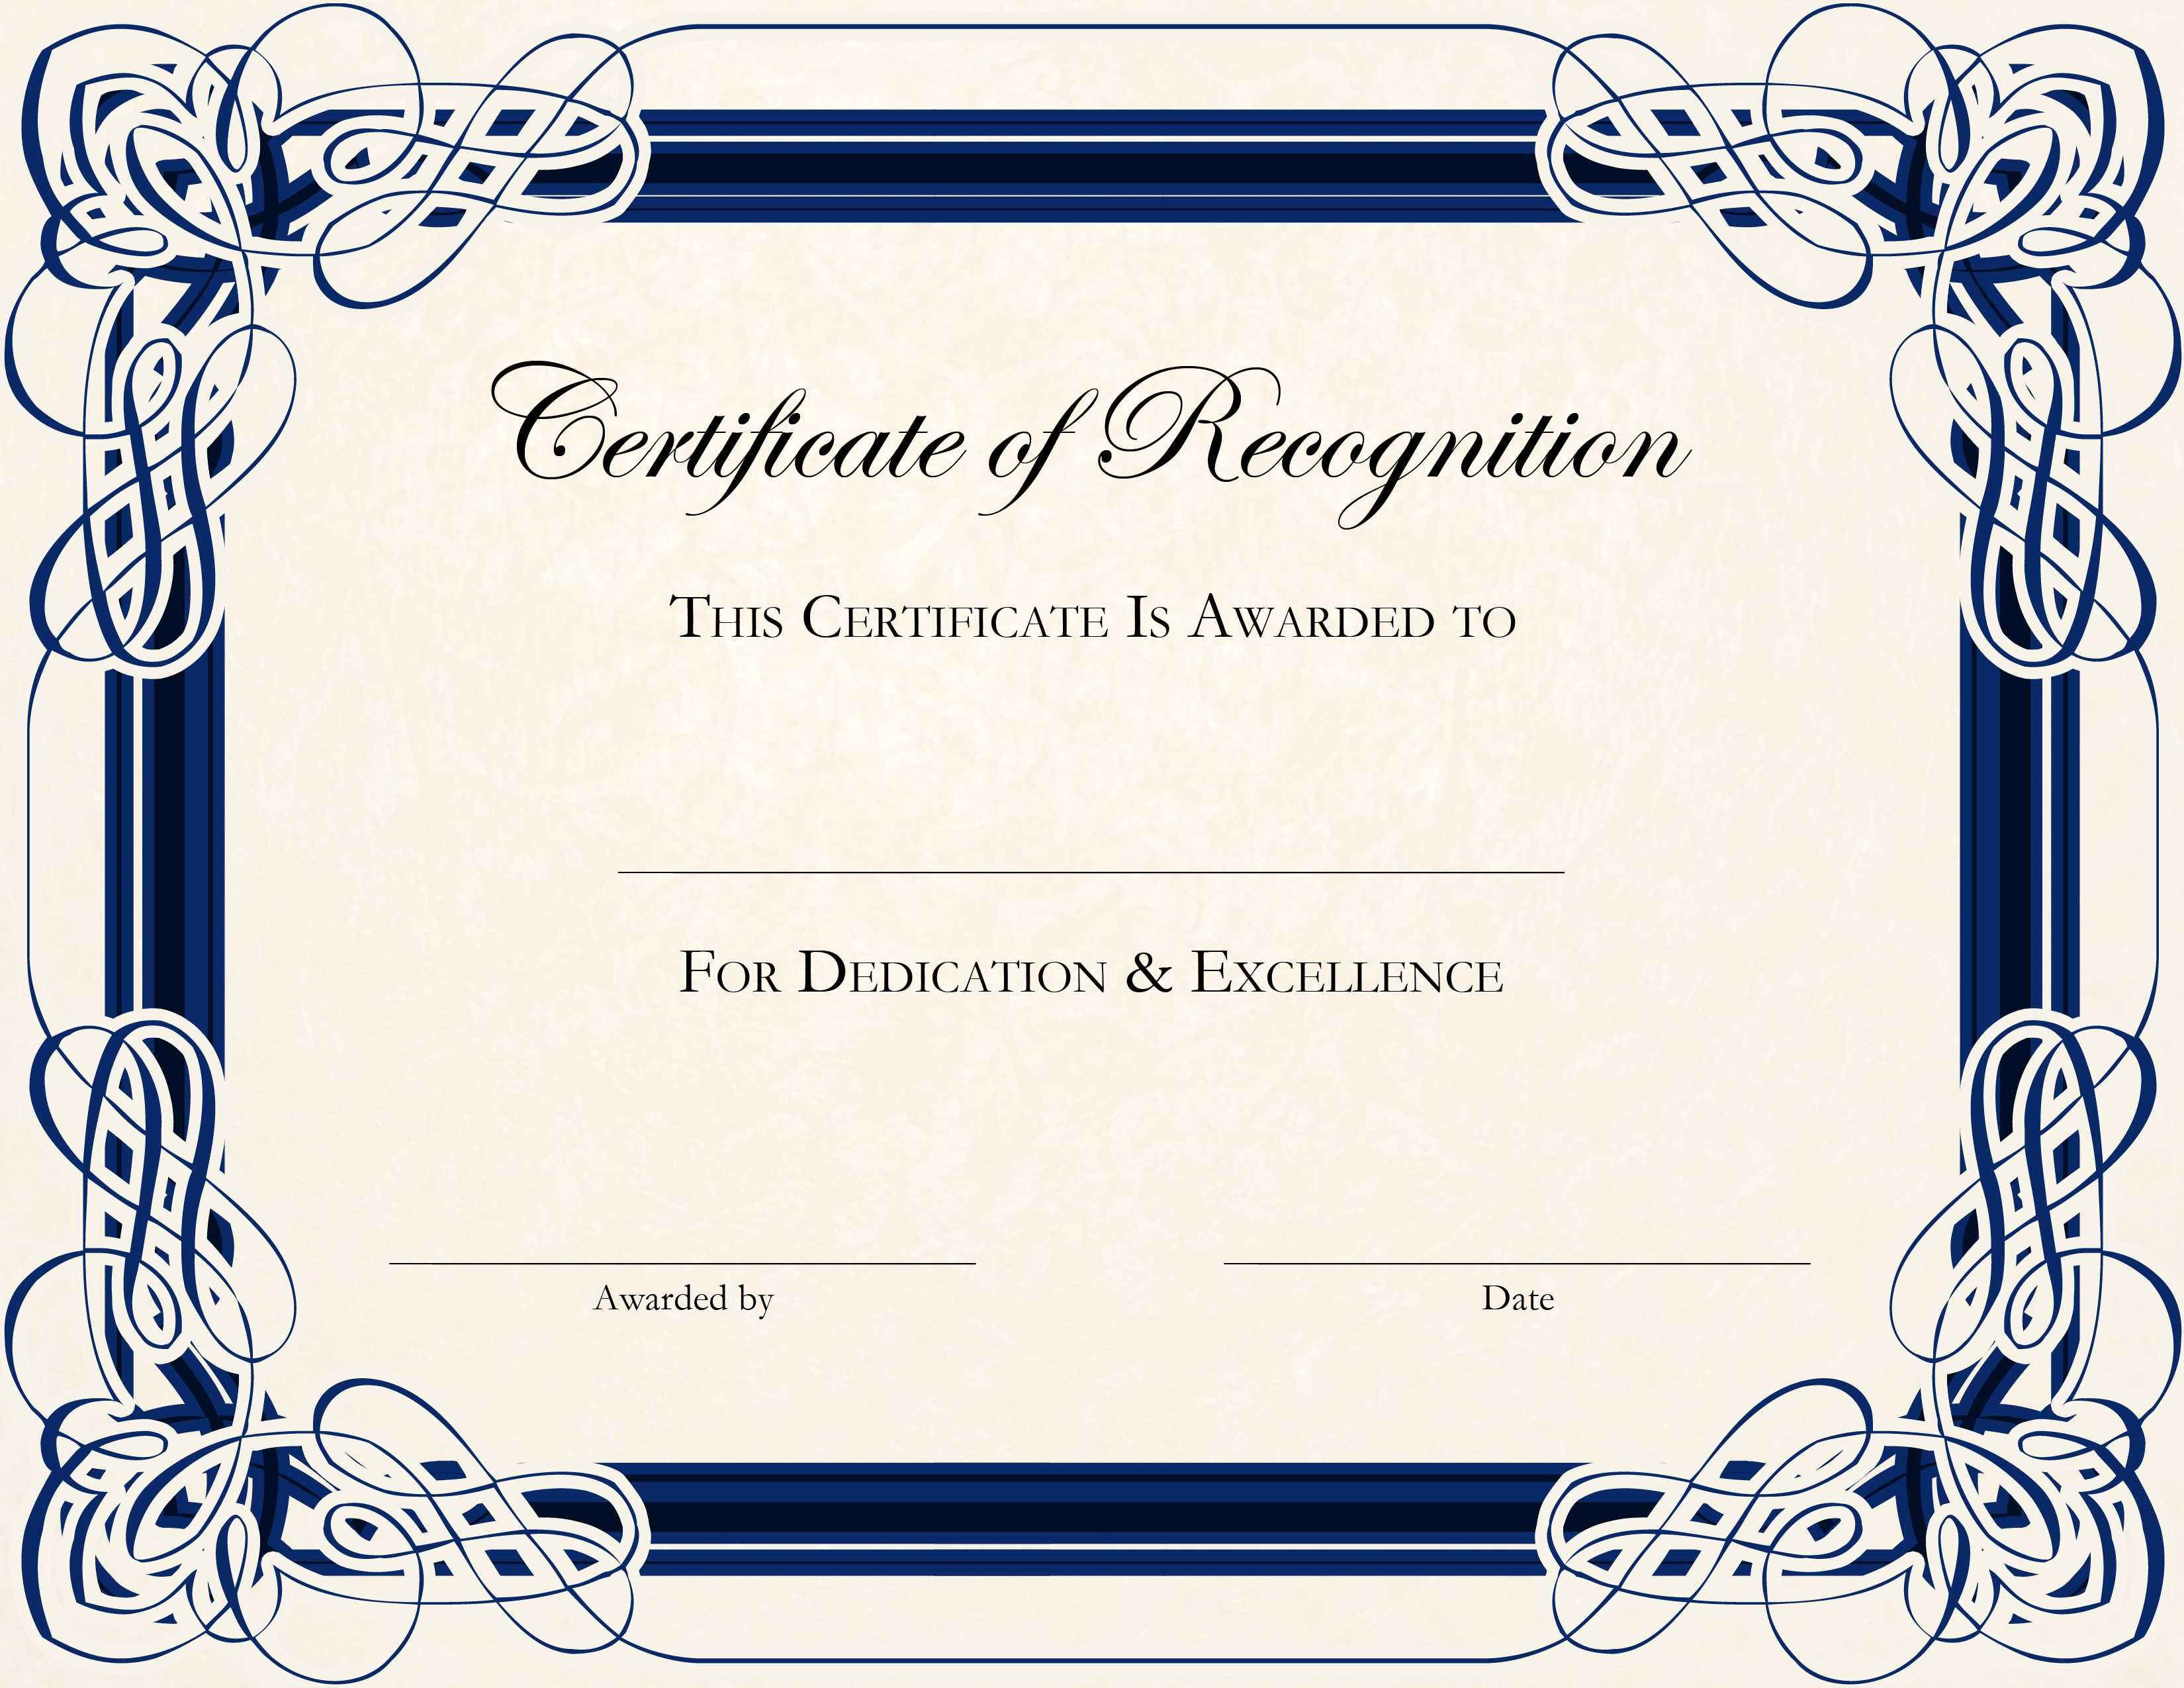 Certificate Template Designs Recognition Docs | Blankets Throughout Sample Certificate Of Recognition Template